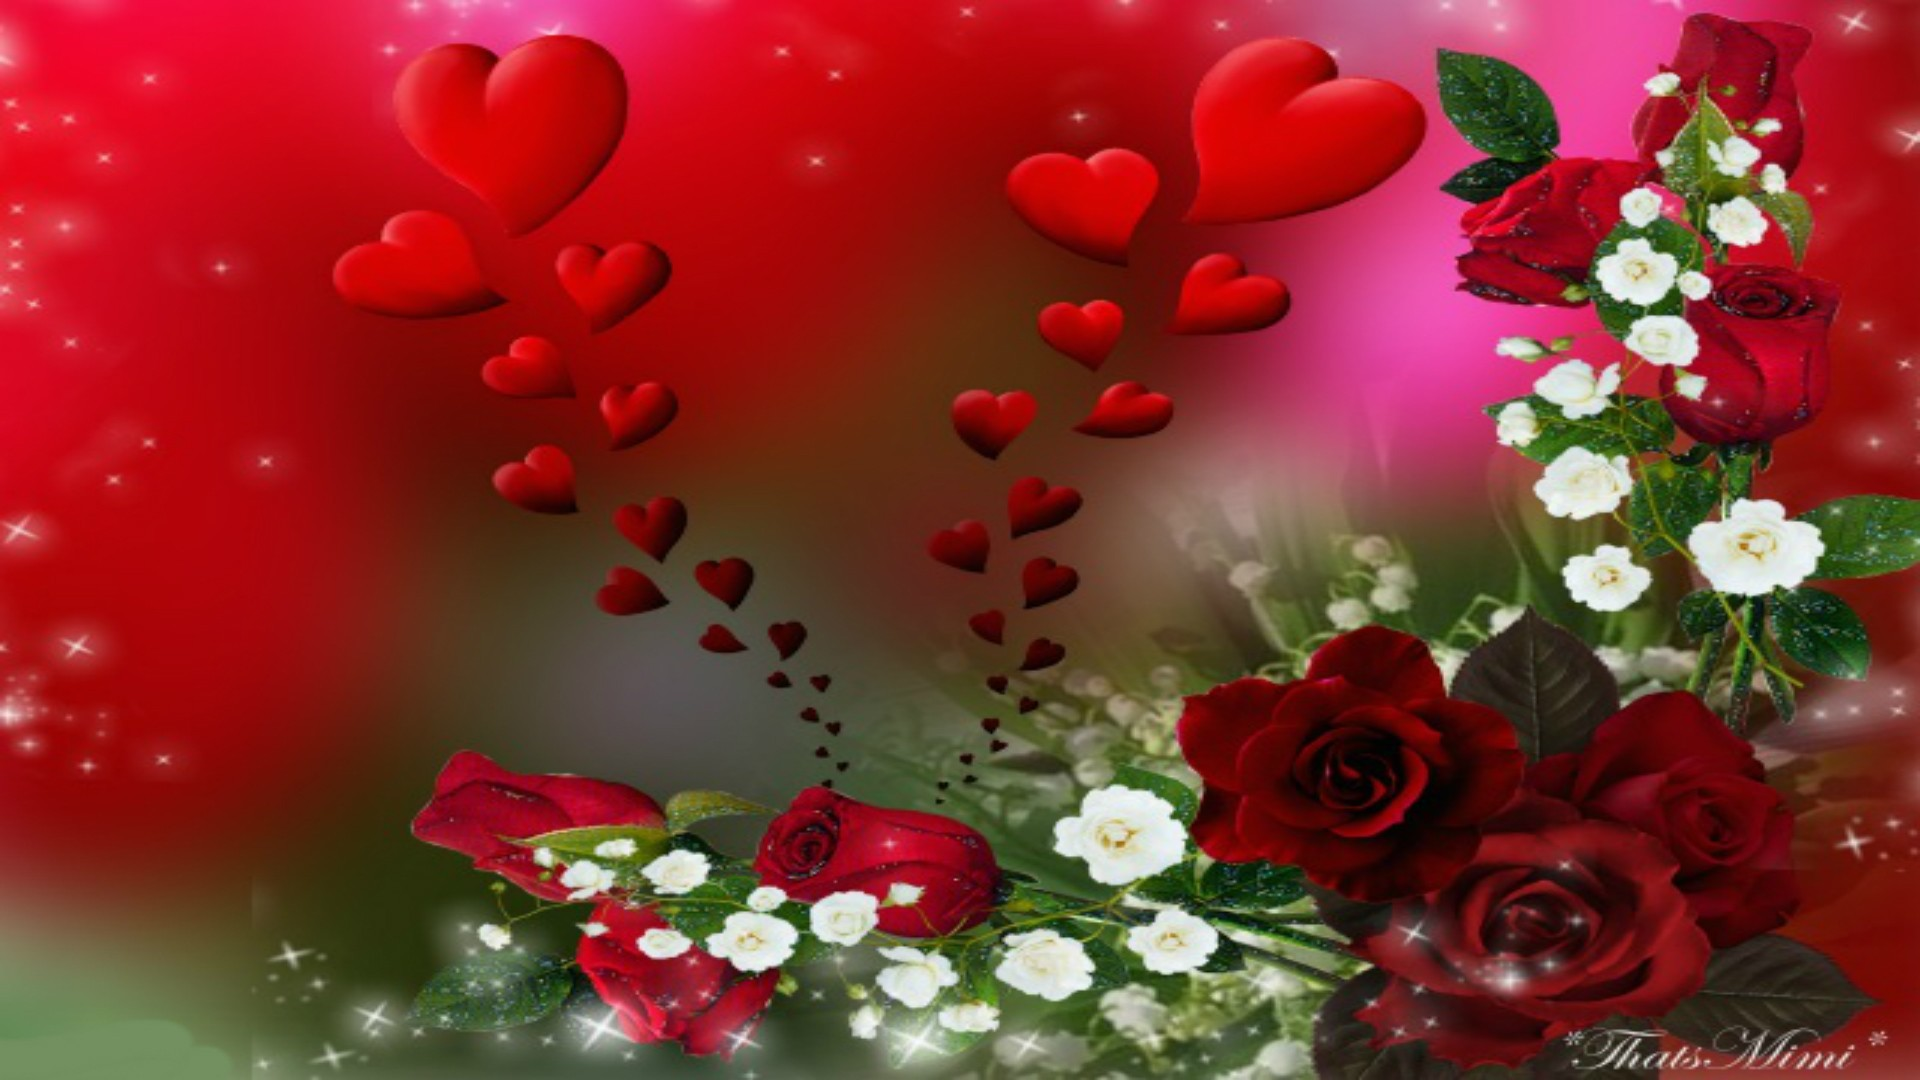 Falling Red Roses Valentines Beautiful Romantic Hearts - Garden Roses - HD Wallpaper